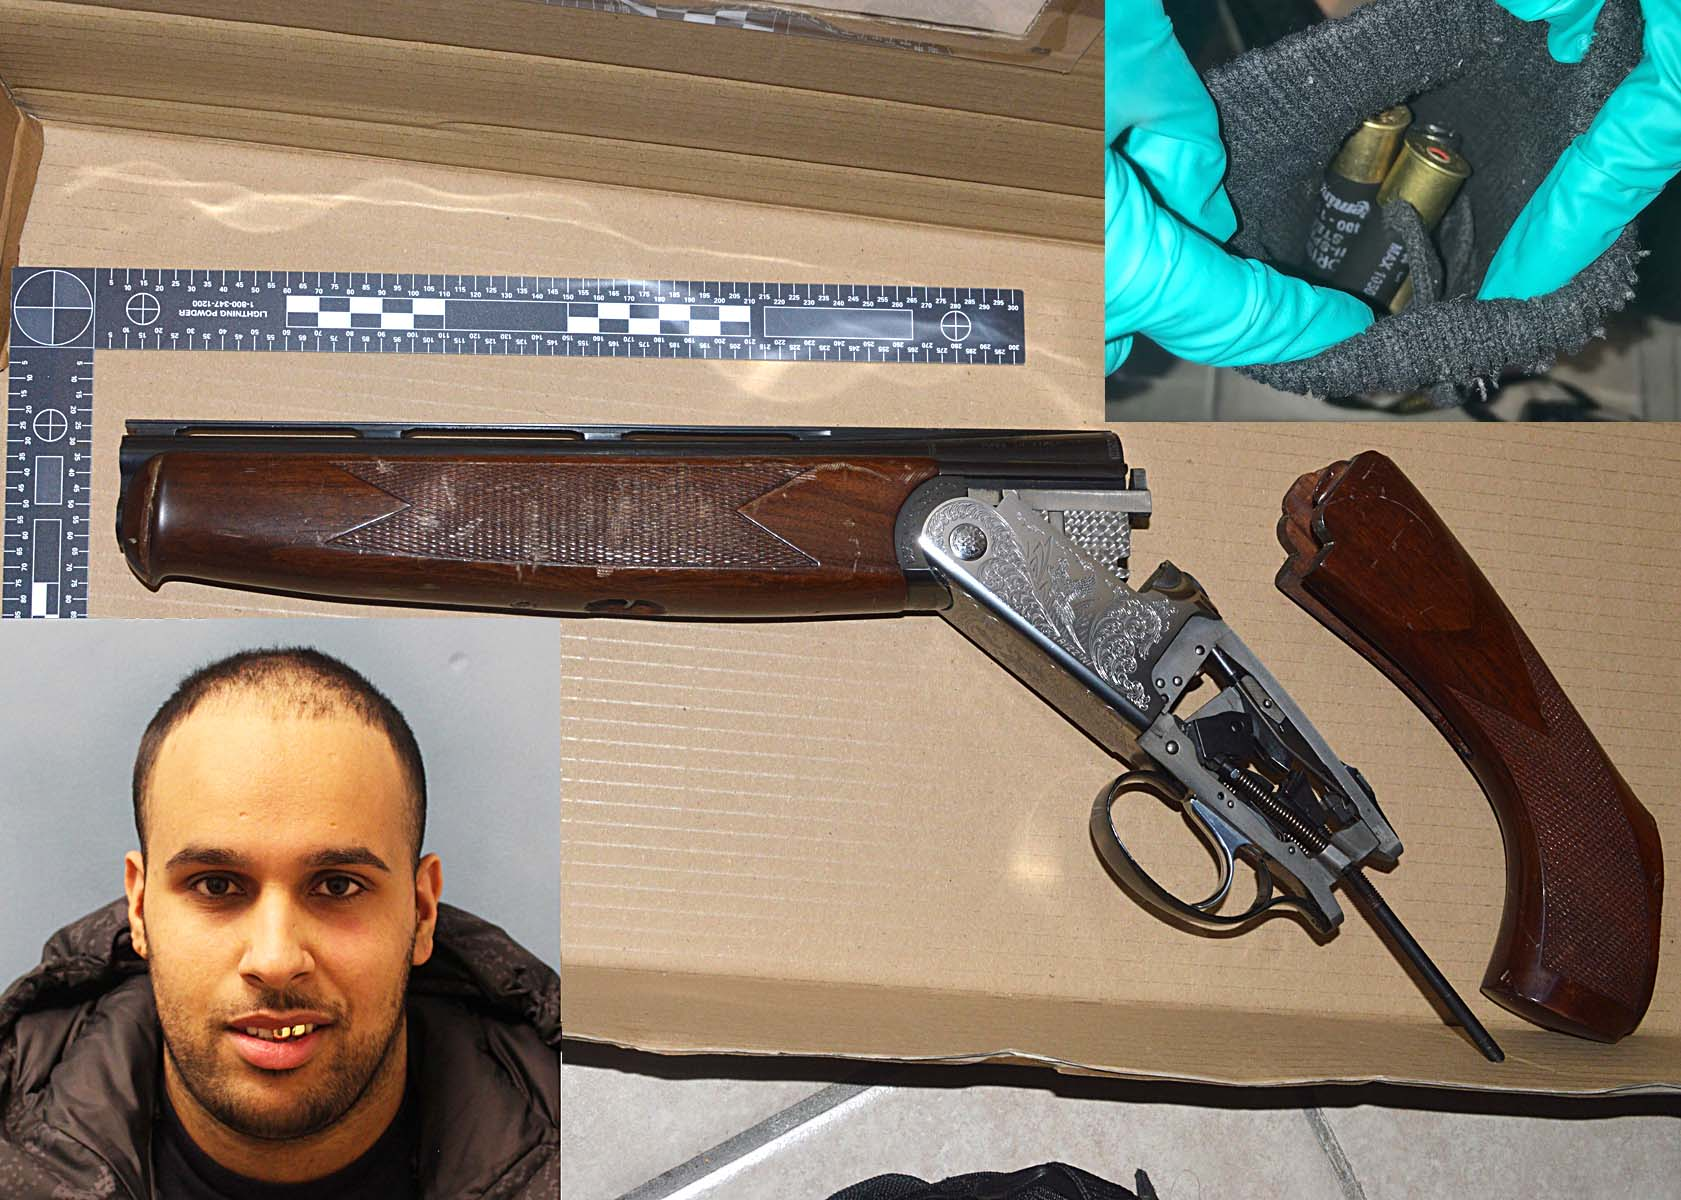 Mohamed Hamza Riaz, 21, of Tadworth Road, NW2 has been jailed for five years after police found a shotgun and live ammunition at a residential address in Brent.